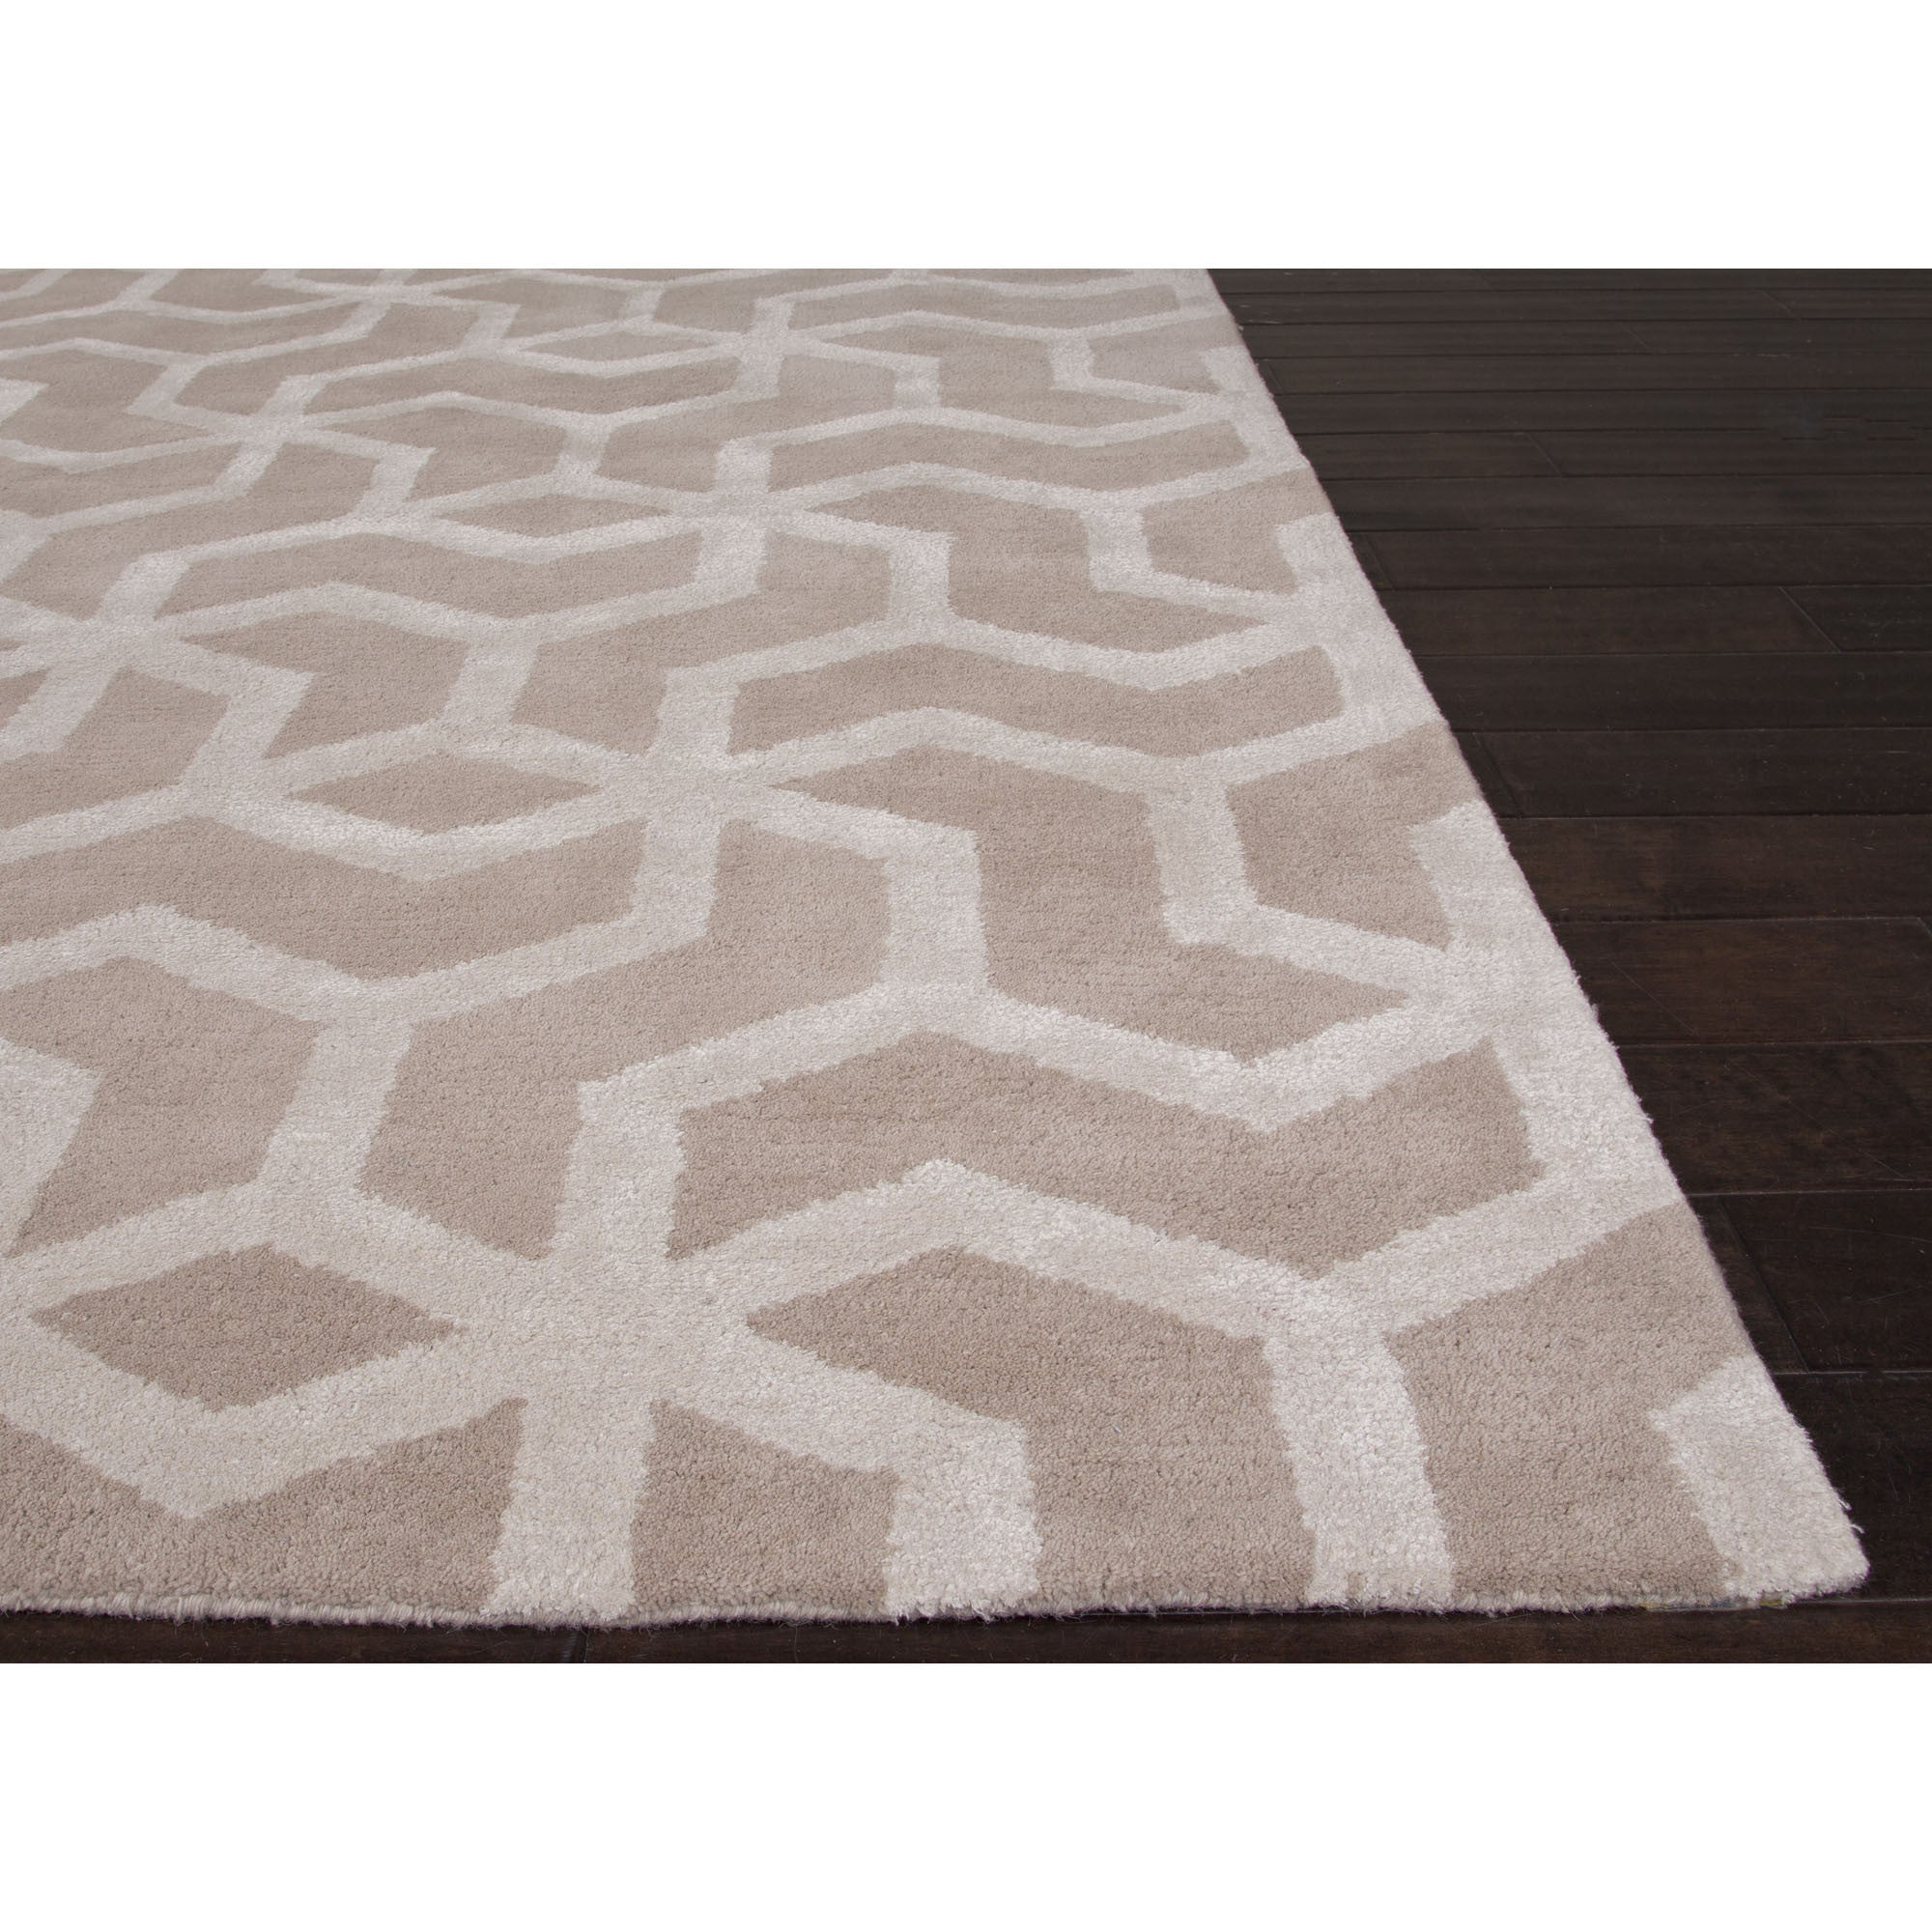 Jaipur rugs modern geometric pattern ivory white wool and for Modern wool area rugs